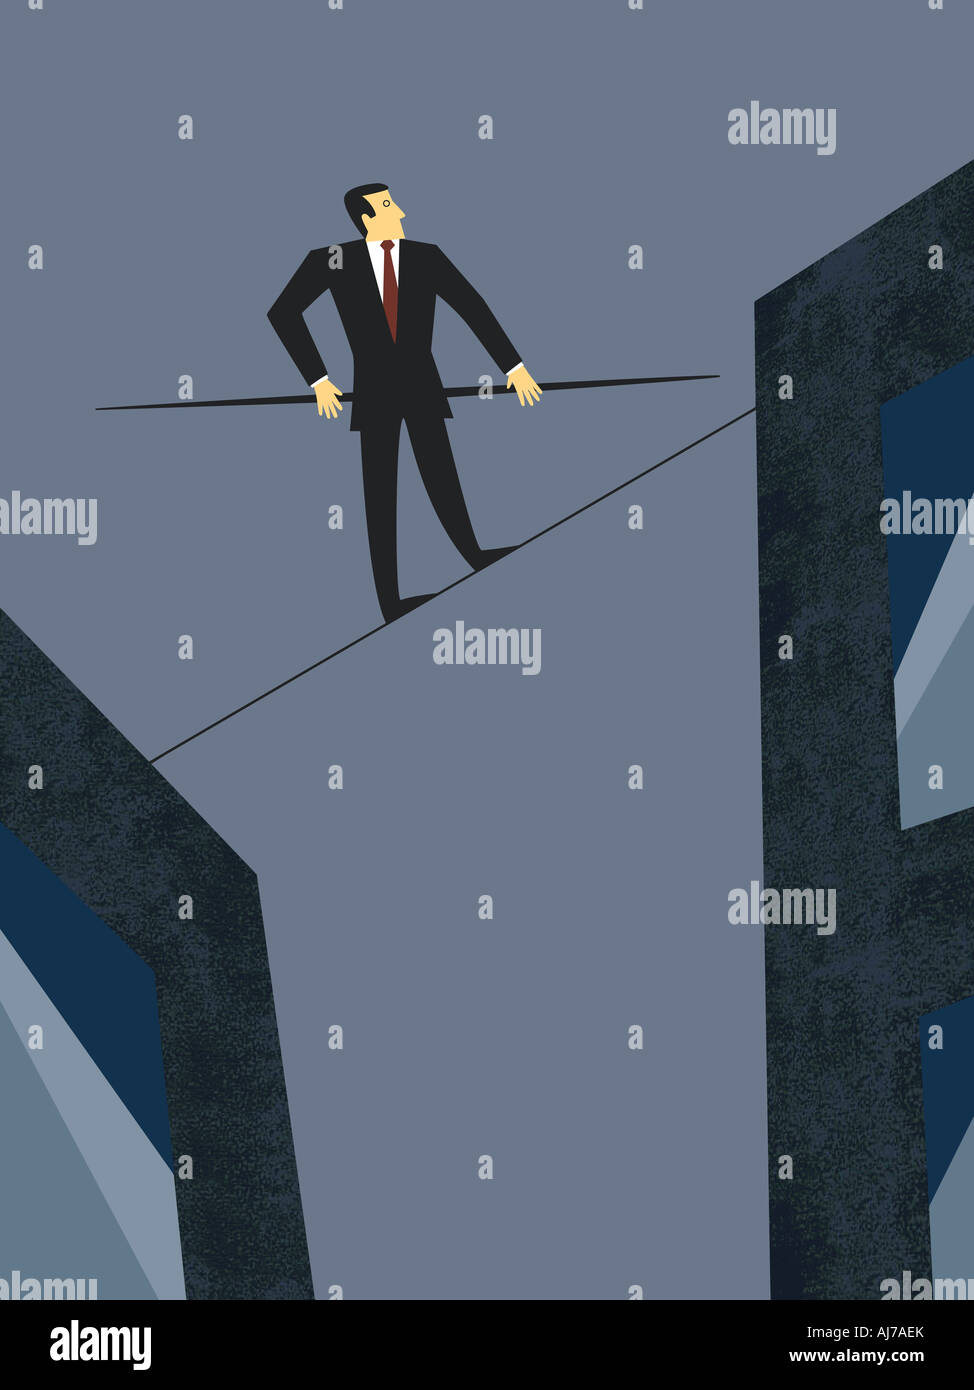 Business Balancing Act - Male executive walking on tightrope - Stock Image